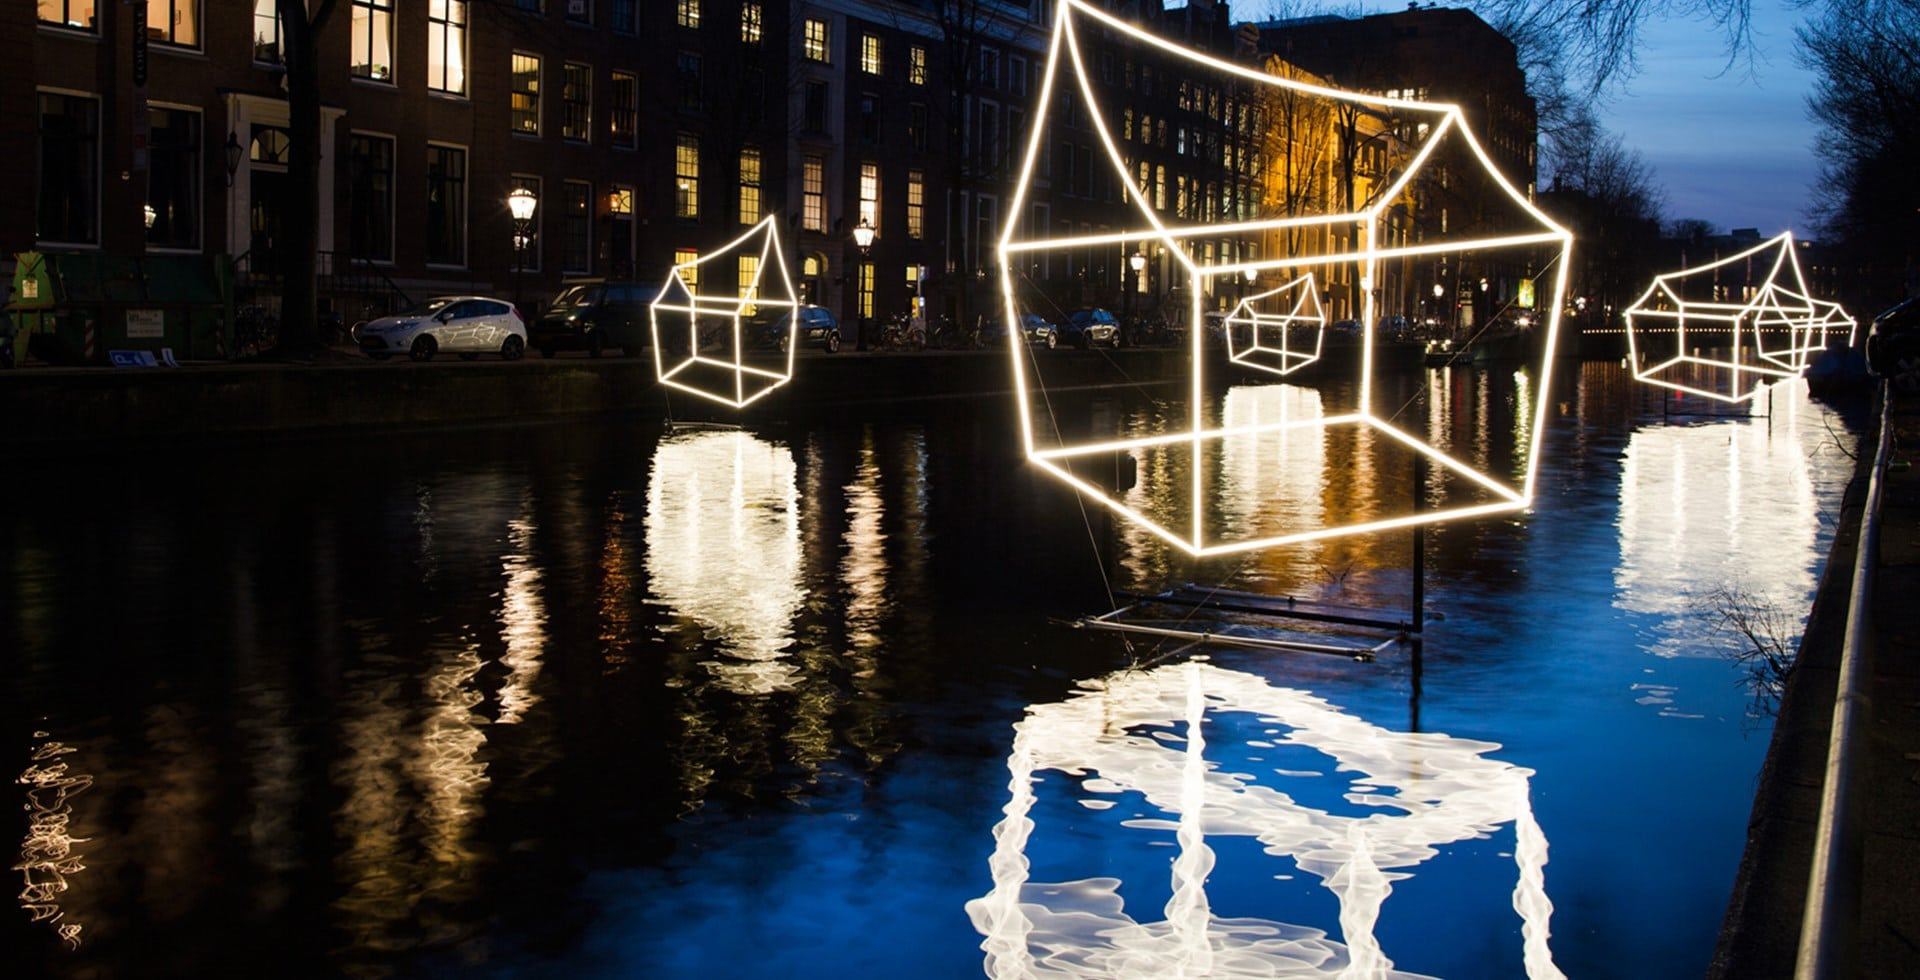 Amsterdam light festival tour